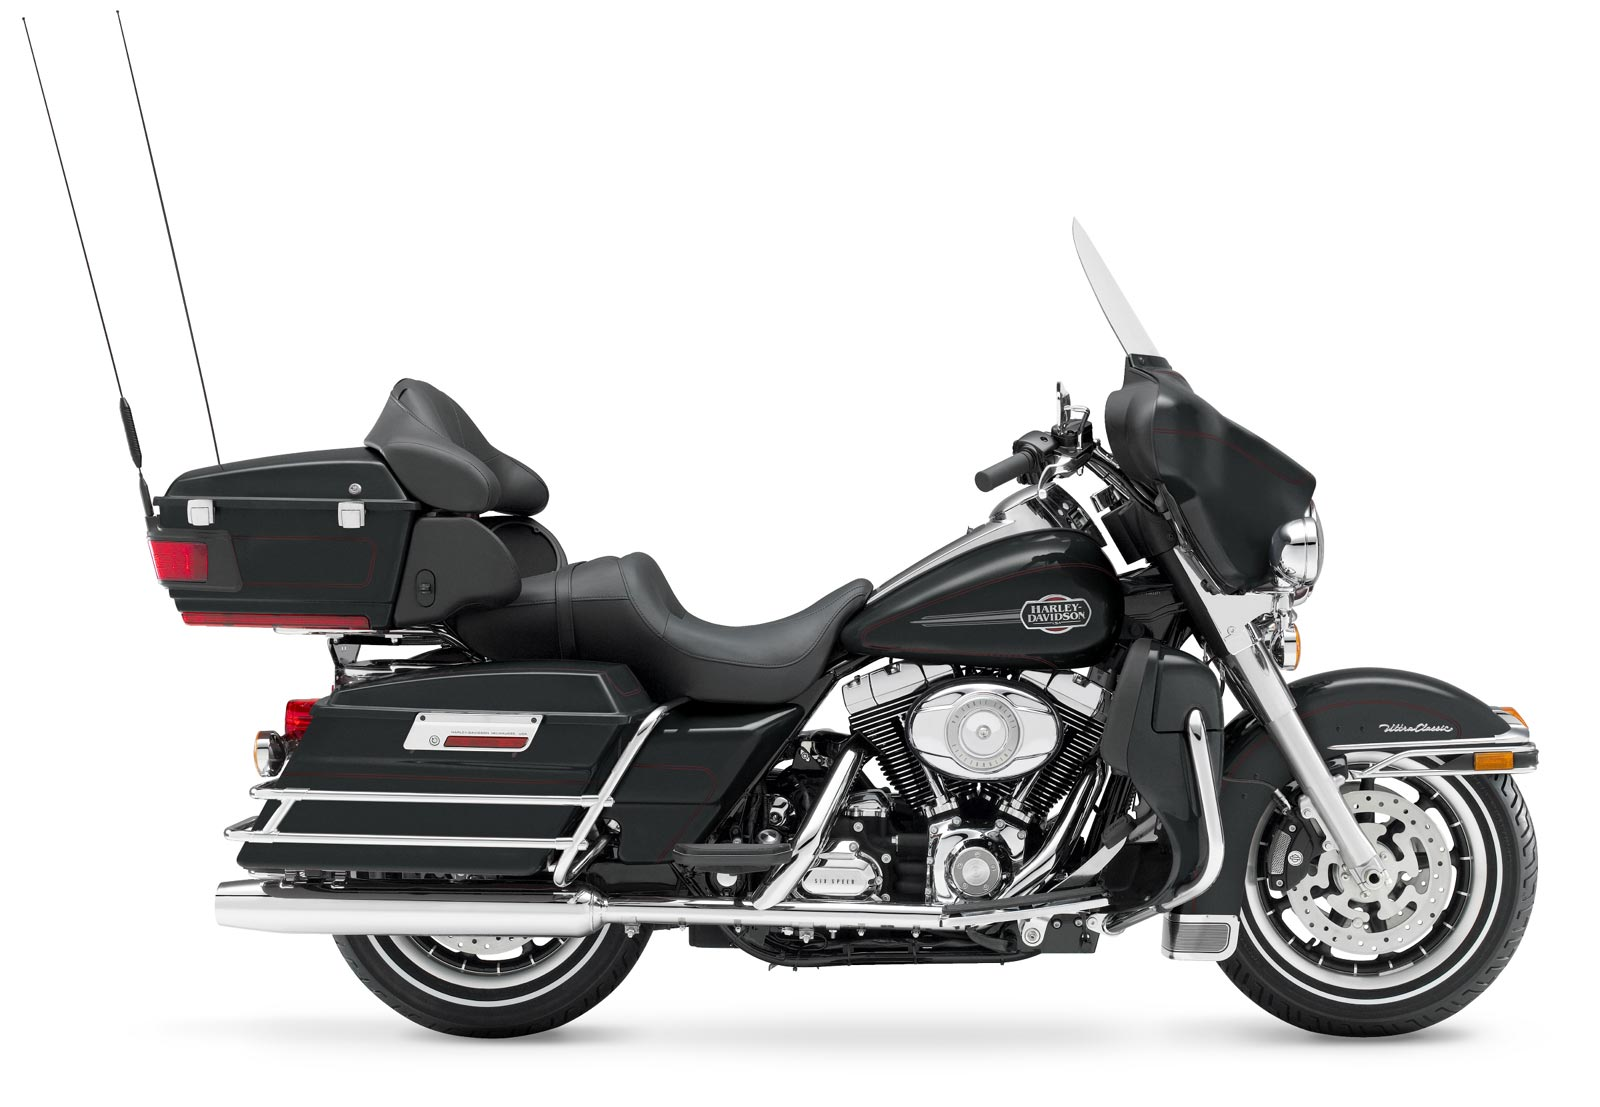 1990 Harley-Davidson Electra Glide Ultra Classic #11